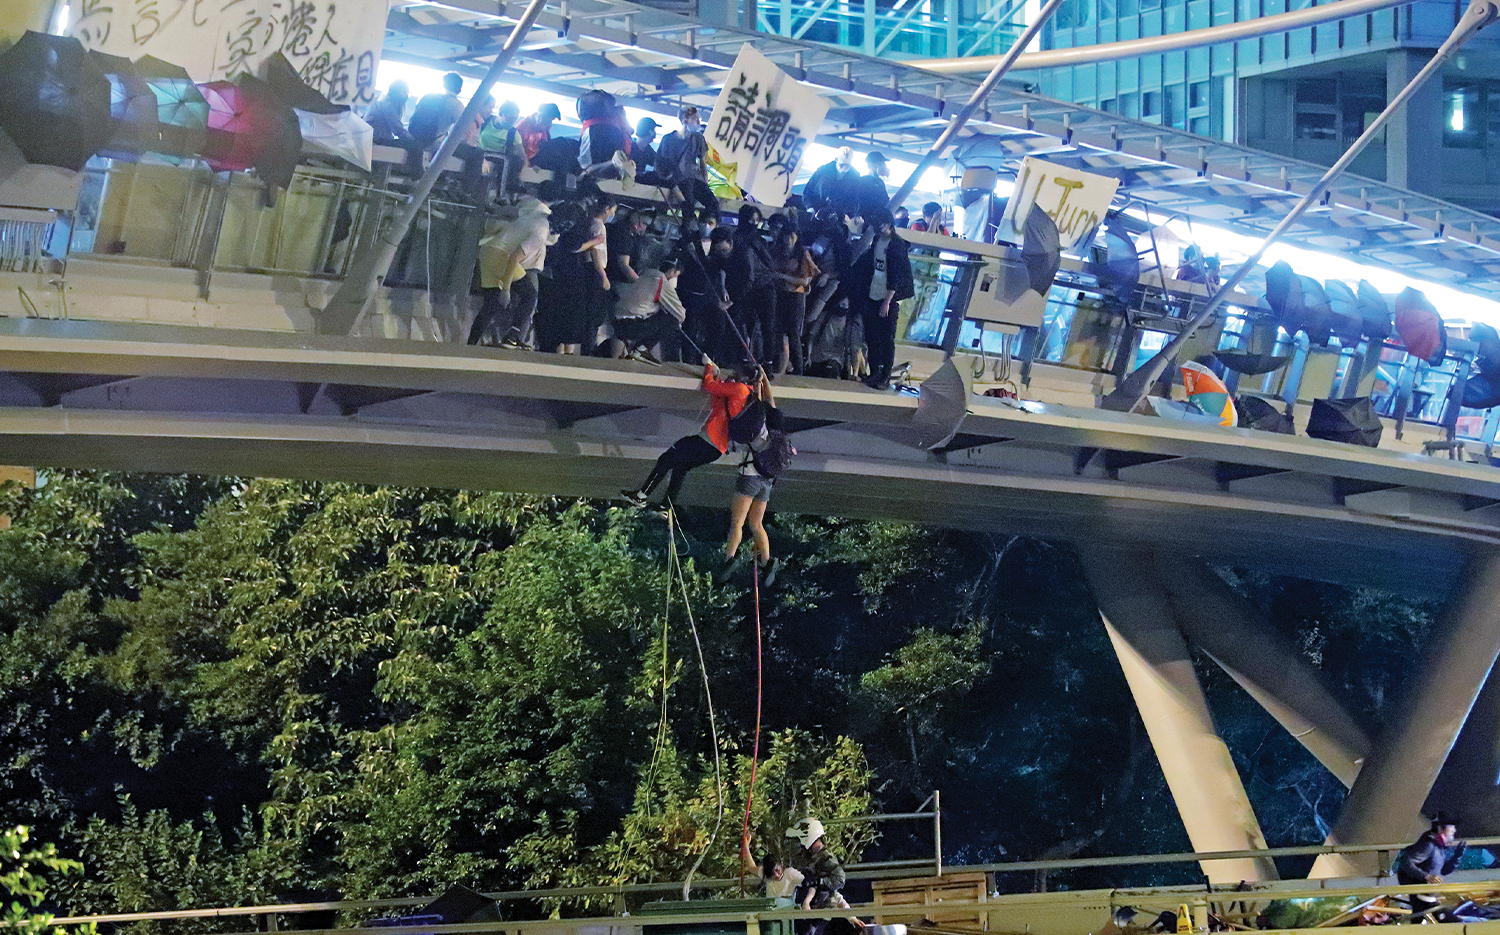 During the 2019 siege at PolyU, protesters use ropes to lower themselves from a pedestrian bridge to waiting motorbikes in order to escape.